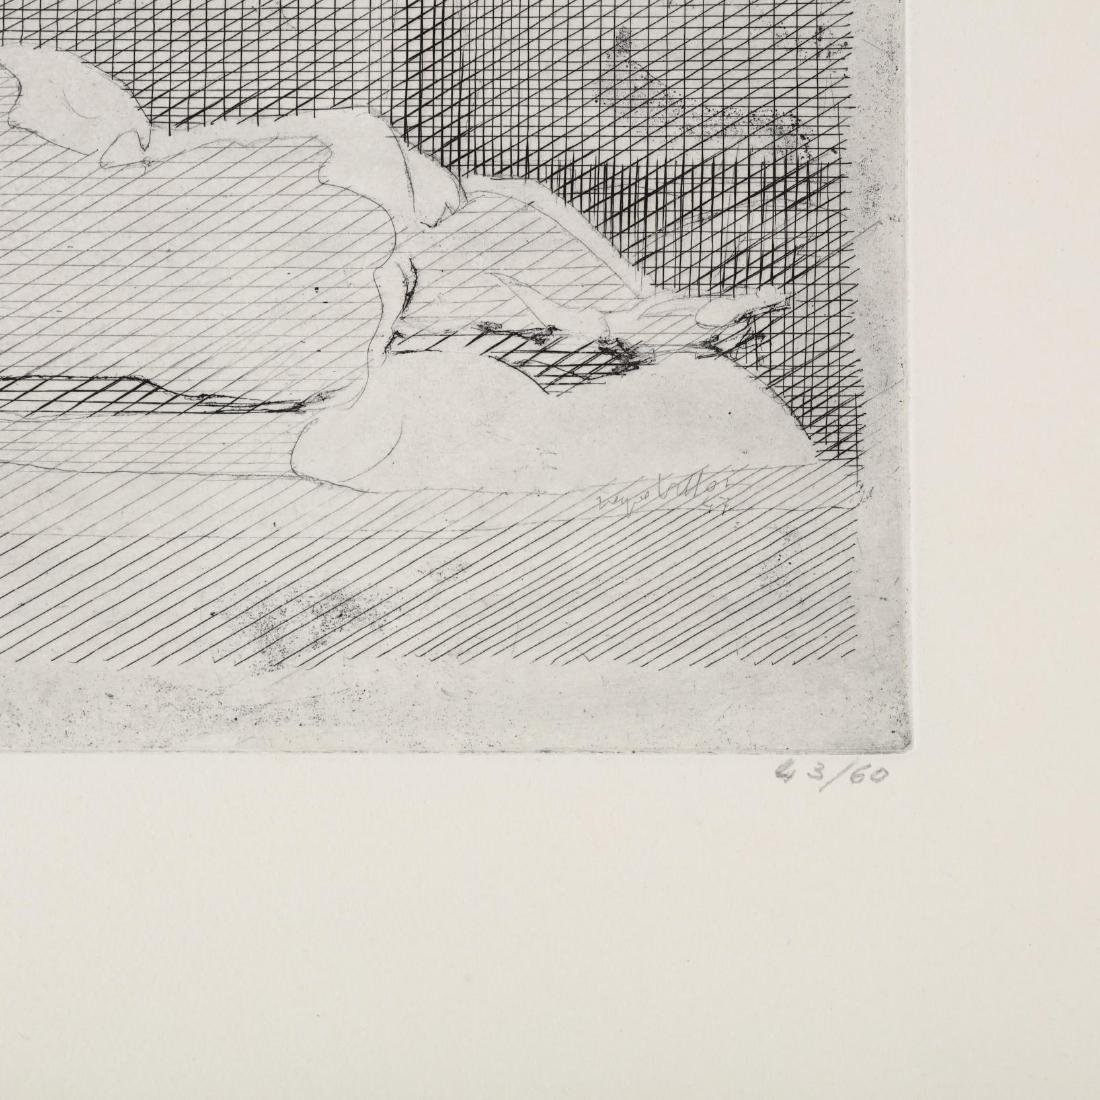 Two 20th-Century Figural Works - Jacques Villon and - 3